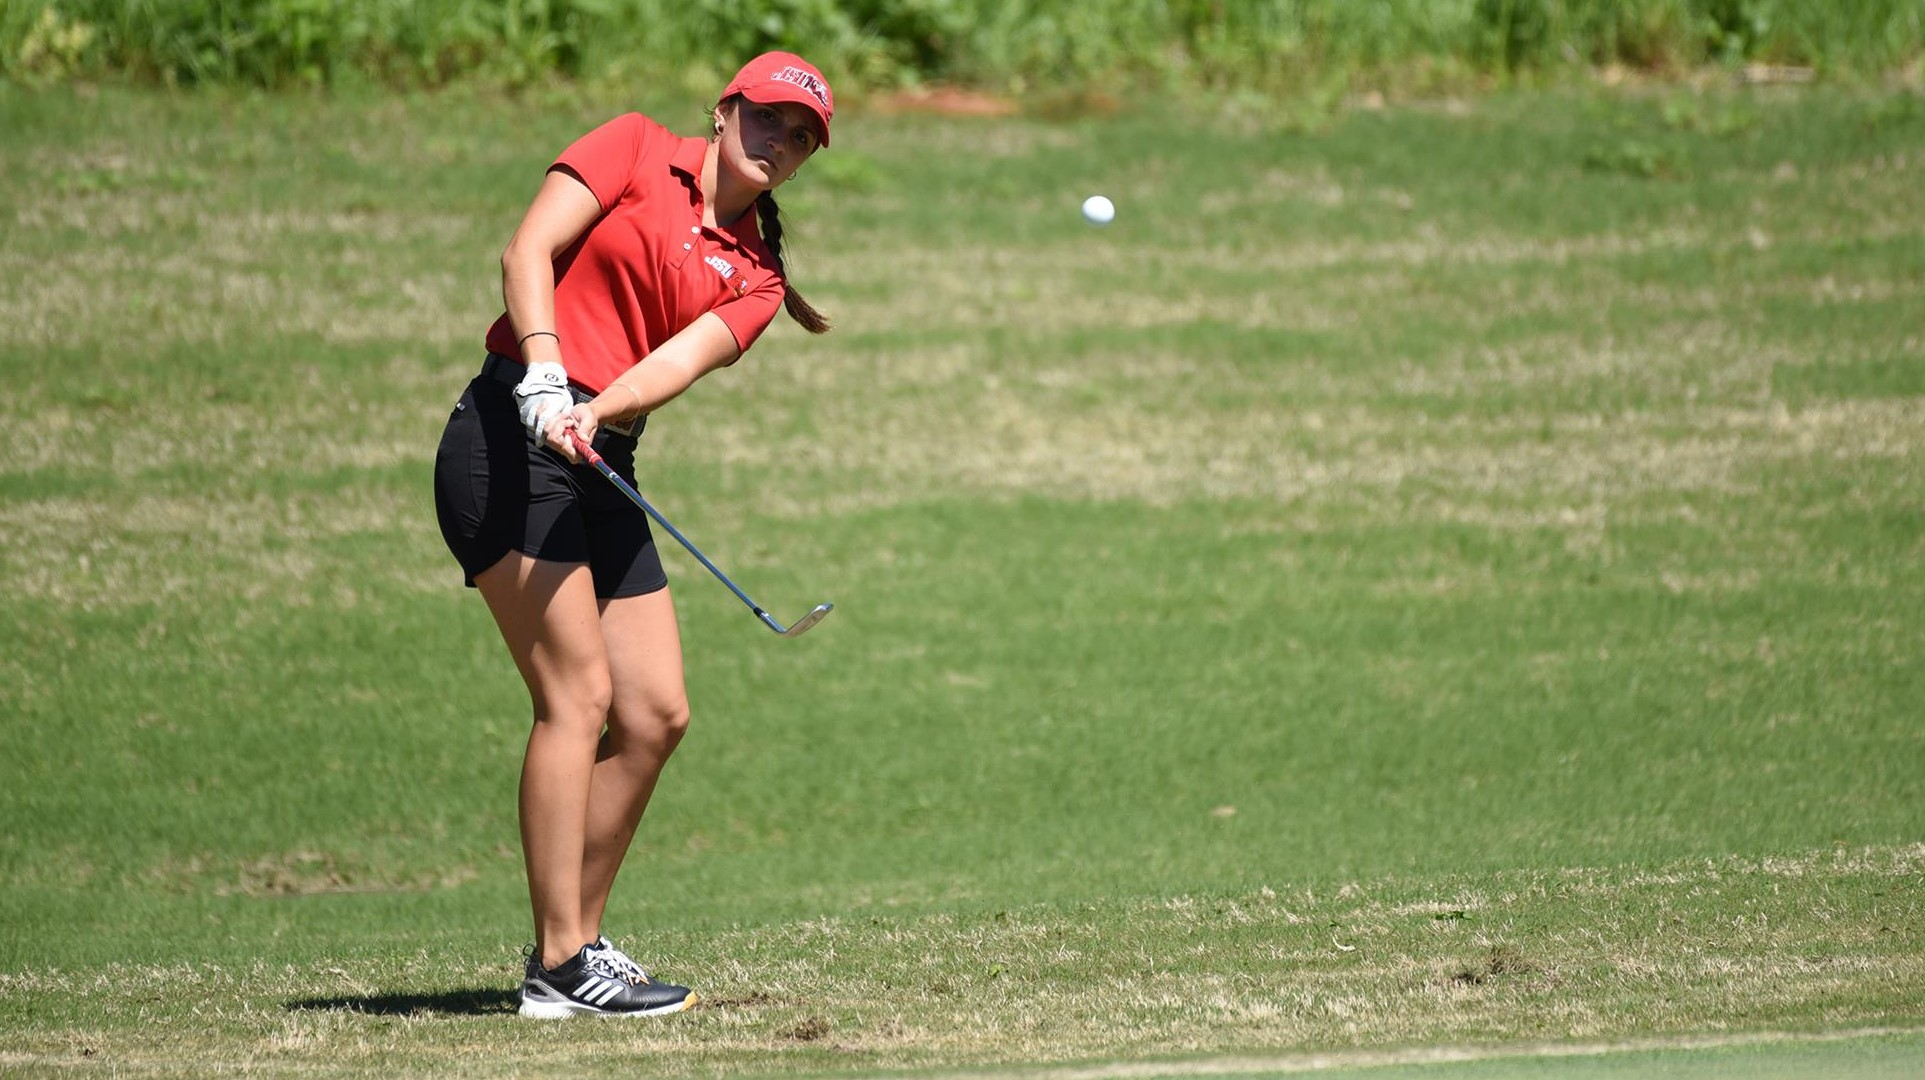 Ana Perez Altuna swings the golf club in the River Land Classic on March 10. Altuna led the Gamecocks to claim fourth place out of the twelve teams which earned her OVC female golfer of the week. (Courtesy of JSU)